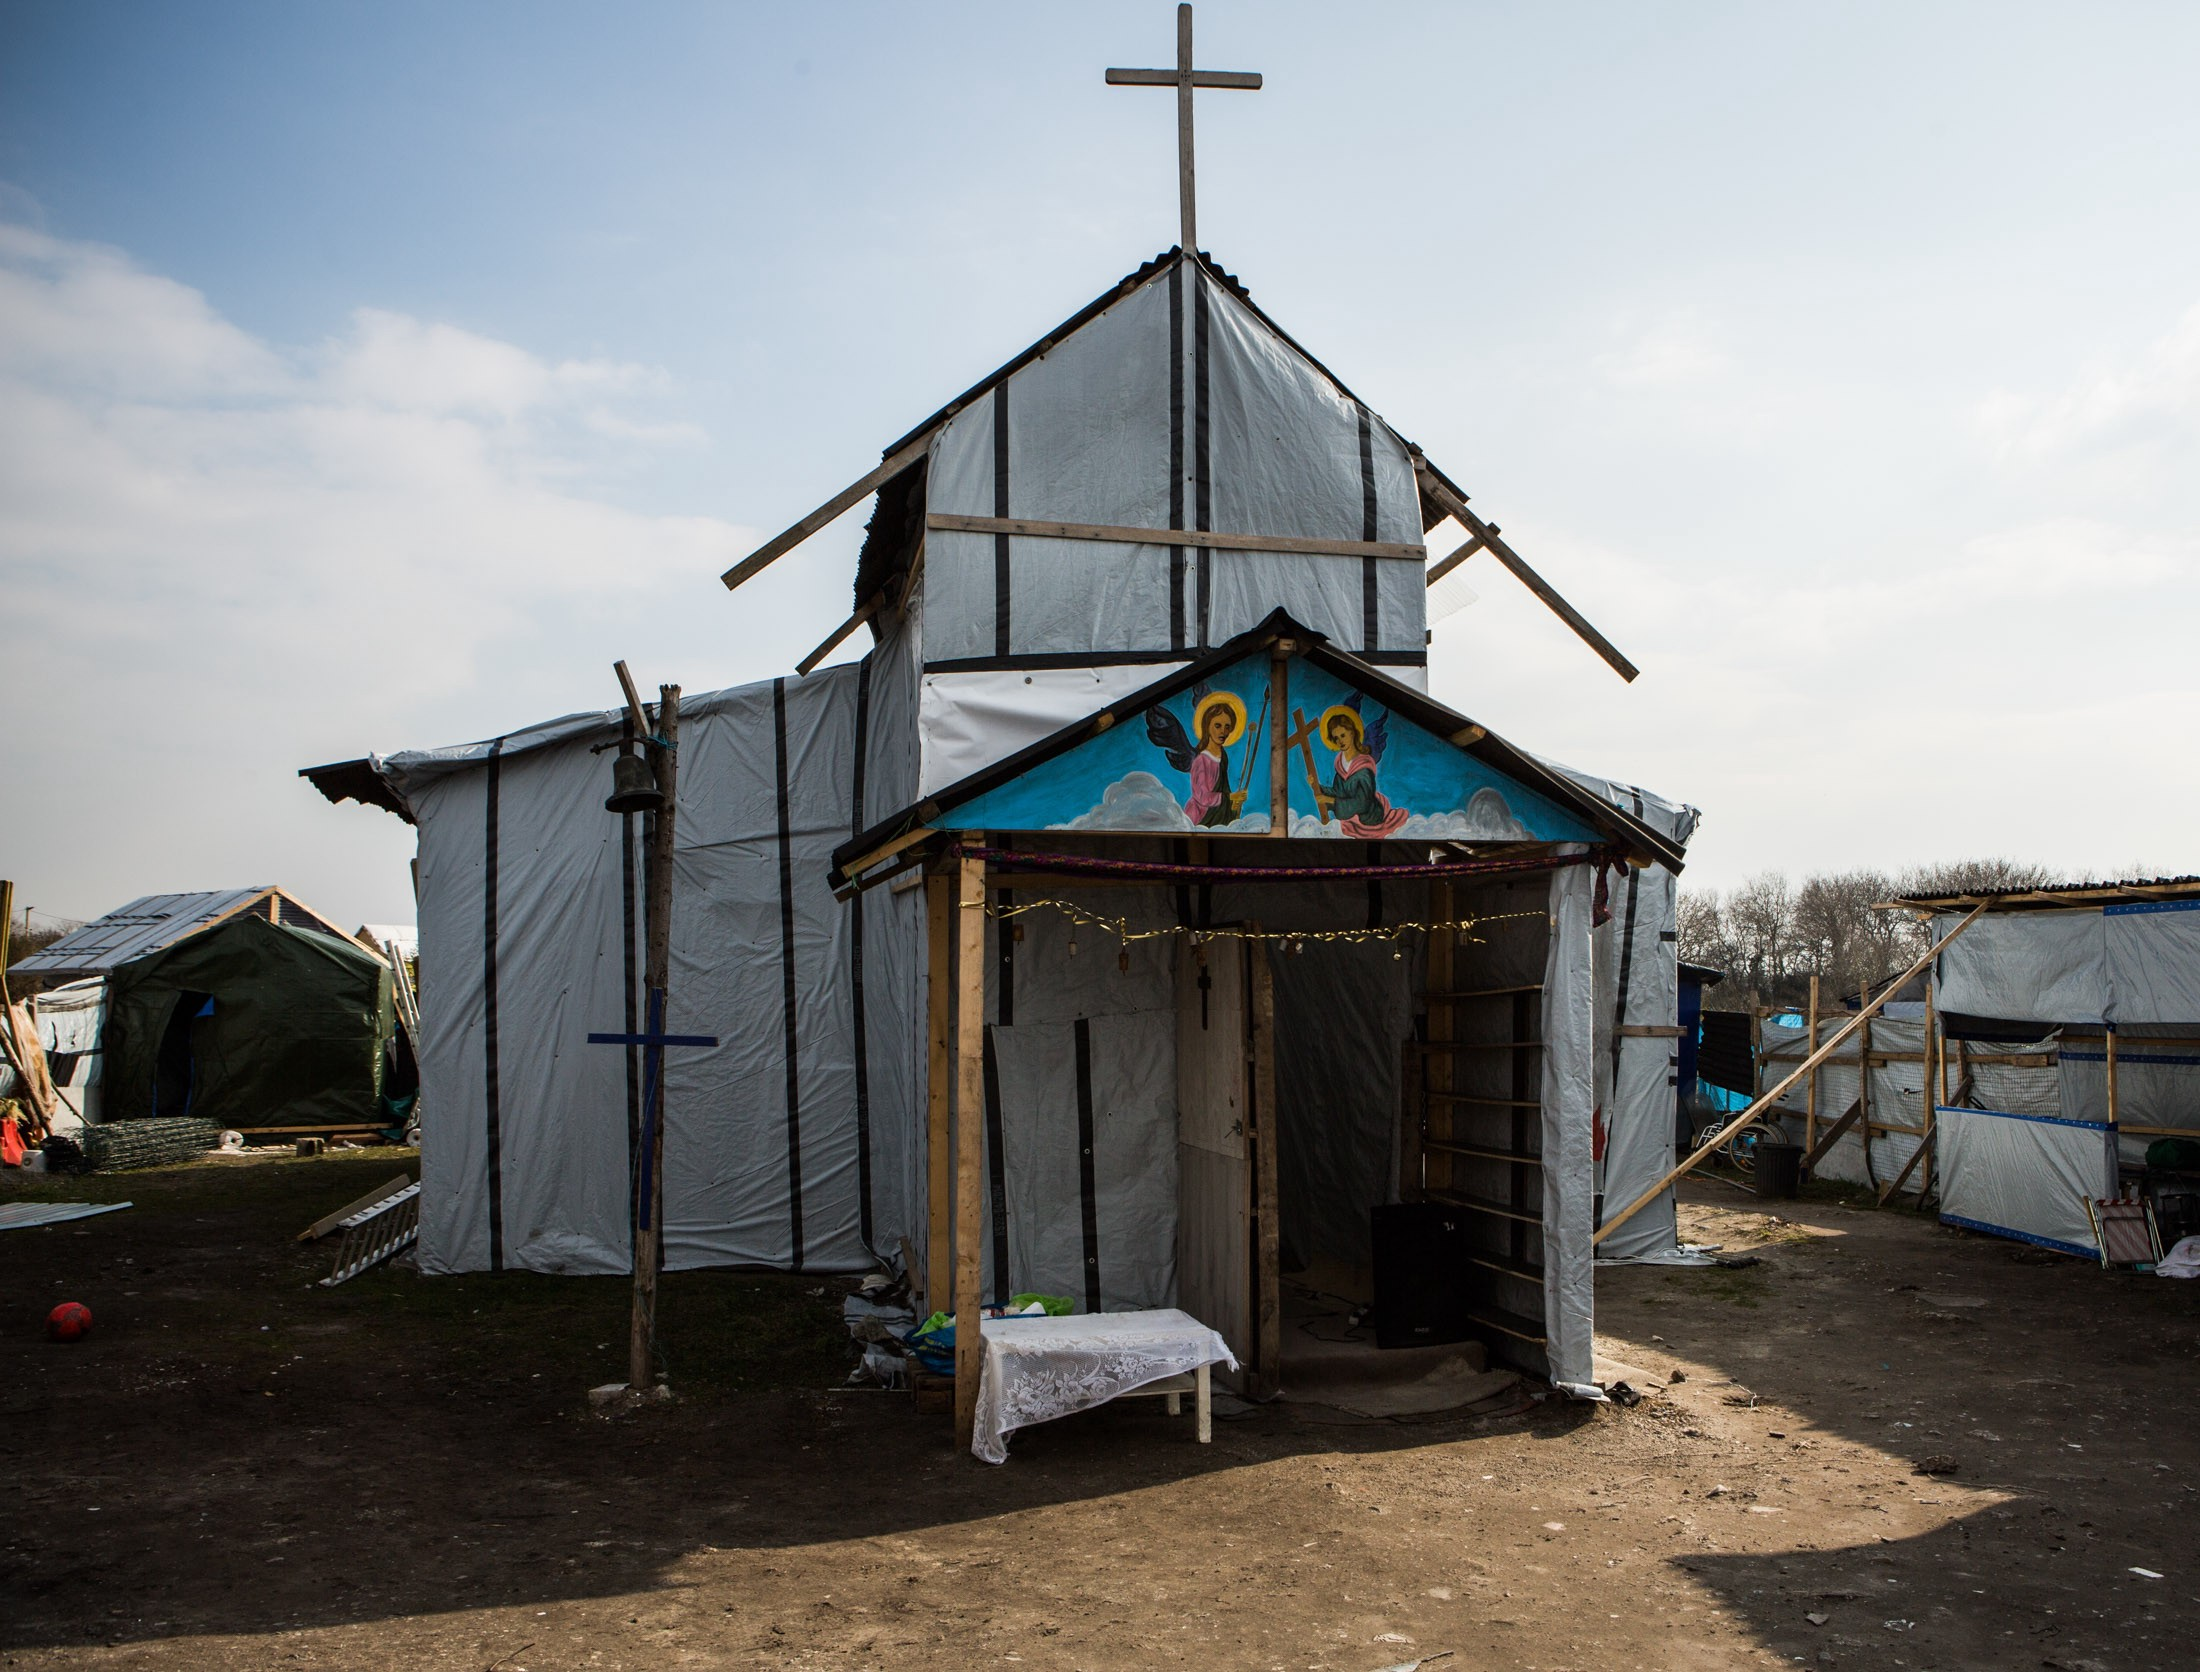 The Eritrean Orthodox church, St. Michael's Calais, pictured here, serves as a safe place for asylum seekers to momentarily escape the tragedy of displacement.